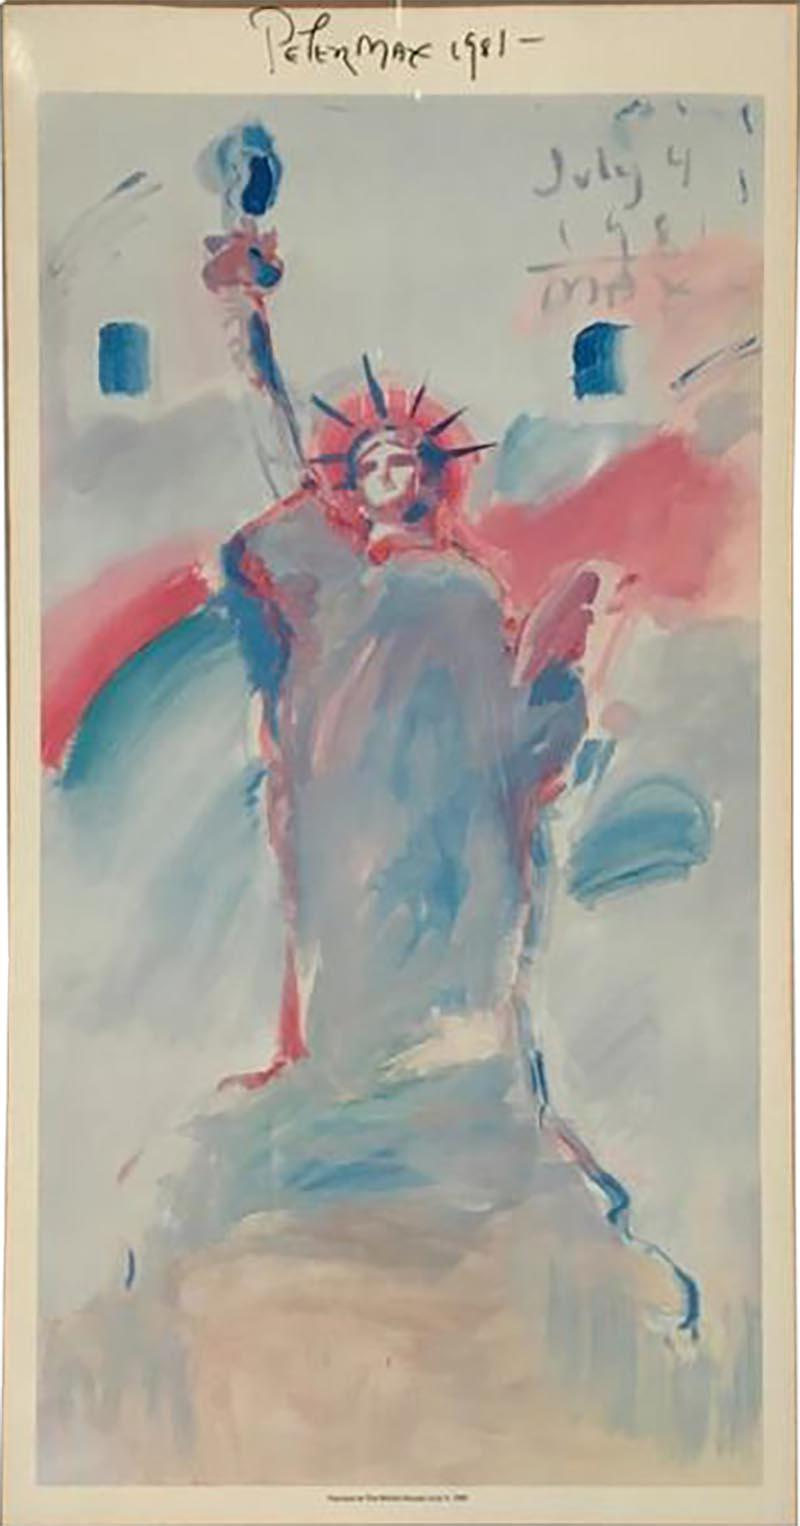 Peter Max Statue of Liberty Poster by Peter Max from 1981